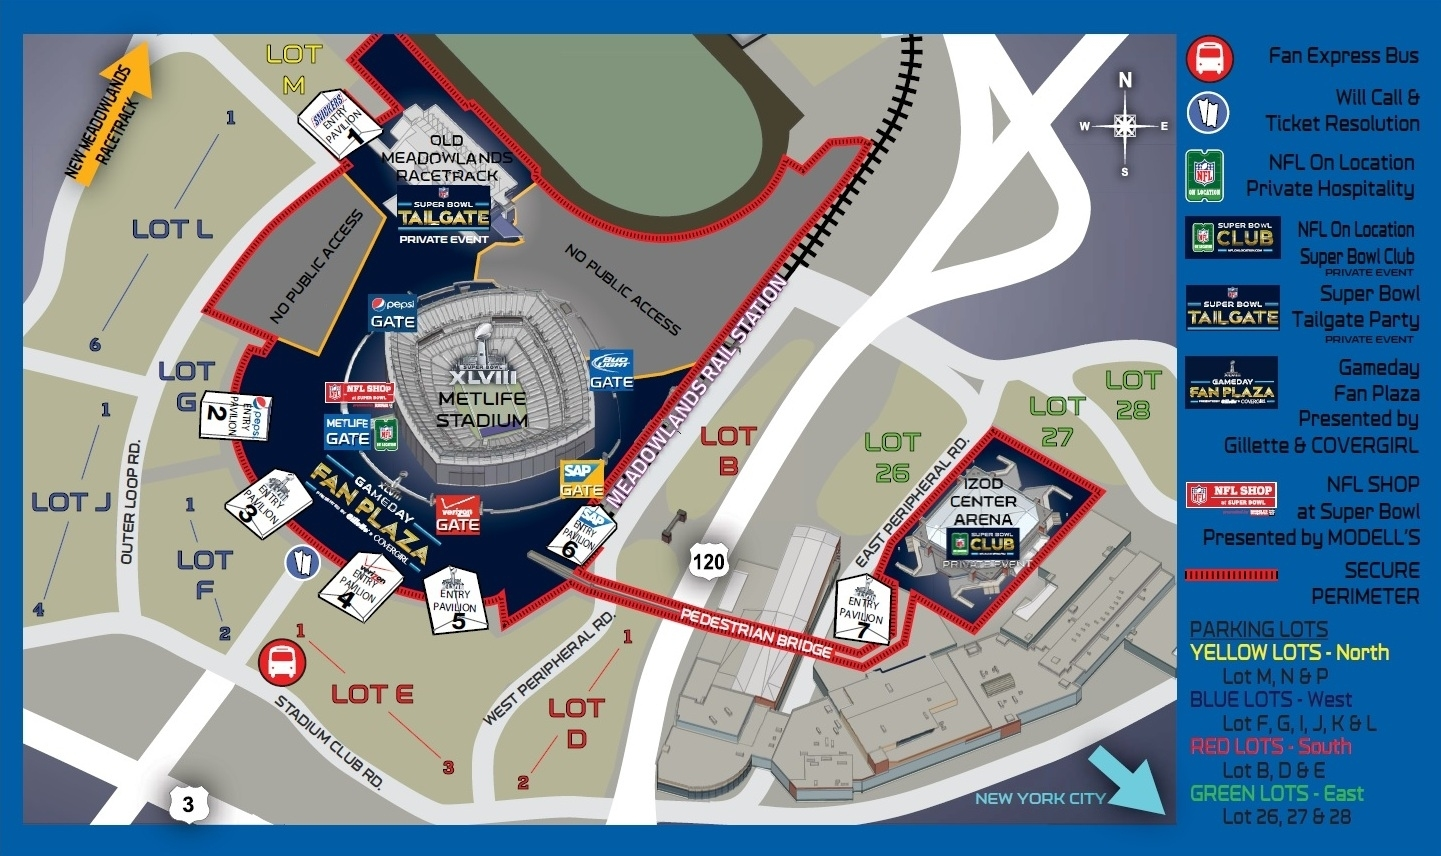 Super Bowl Public Safety Rules - Travel & Stadium Access for Super Bowl Game Day Map